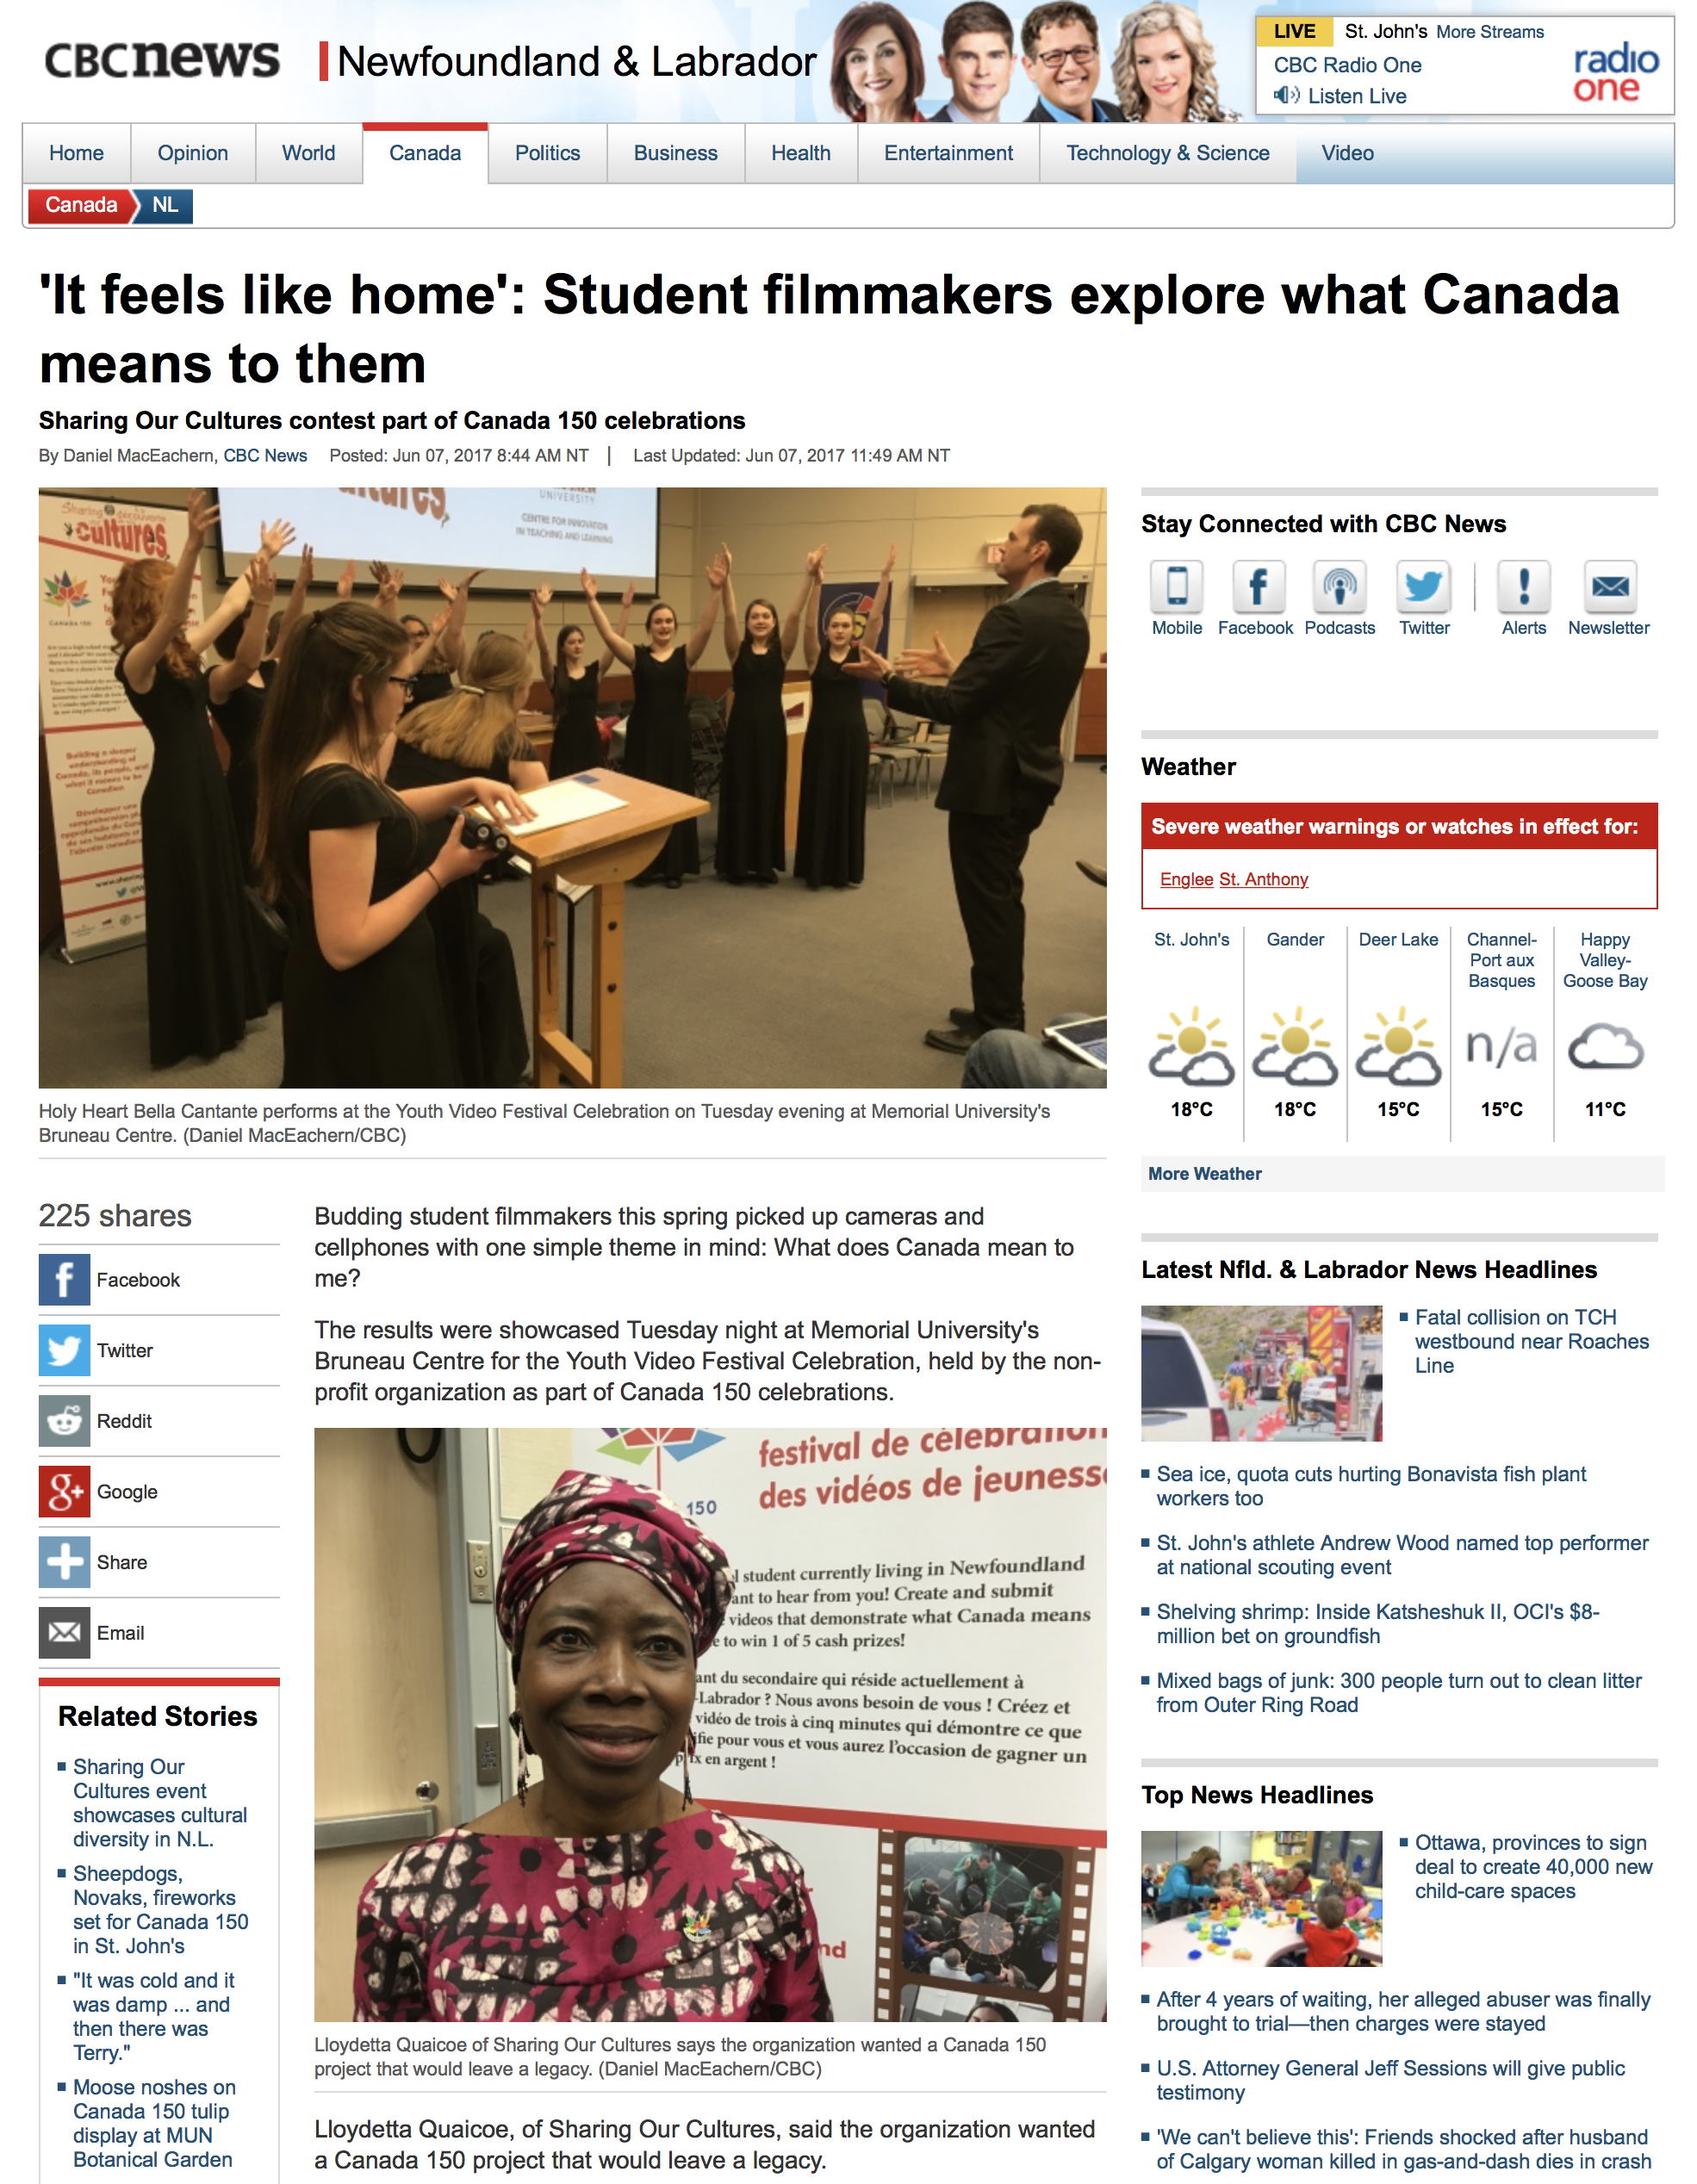 Read the article here...  http://www.cbc.ca/news/canada/newfoundland-labrador/youth-video-festival-celebration-canada-150-1.4148918